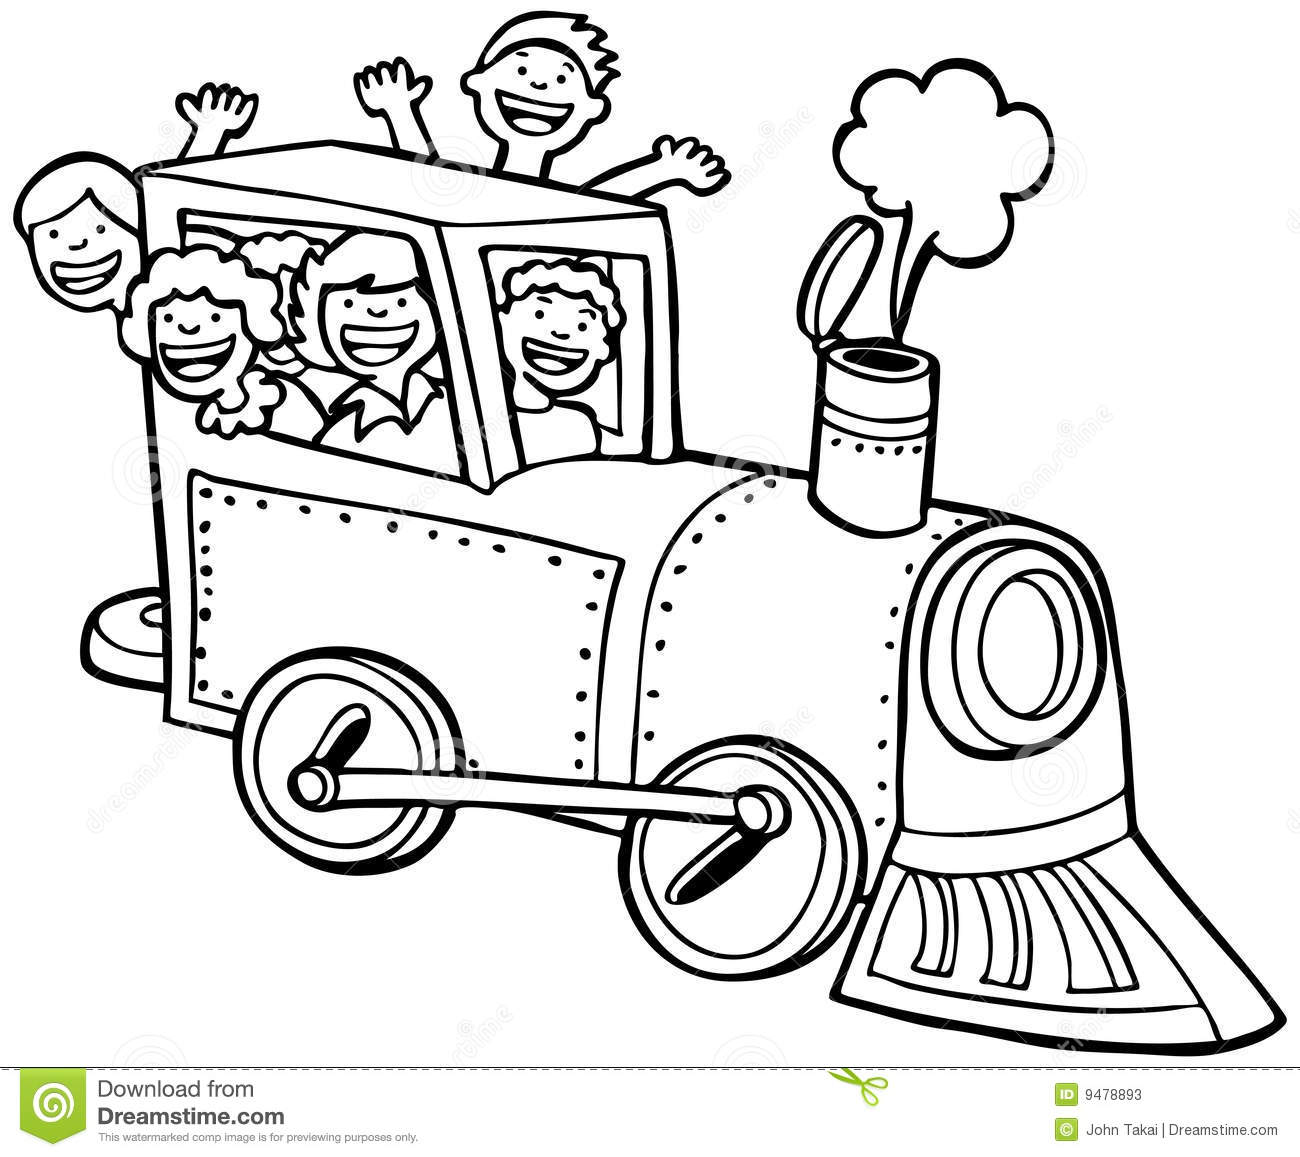 Train Clipart Black And White Child Train Ride Black White 9478893.